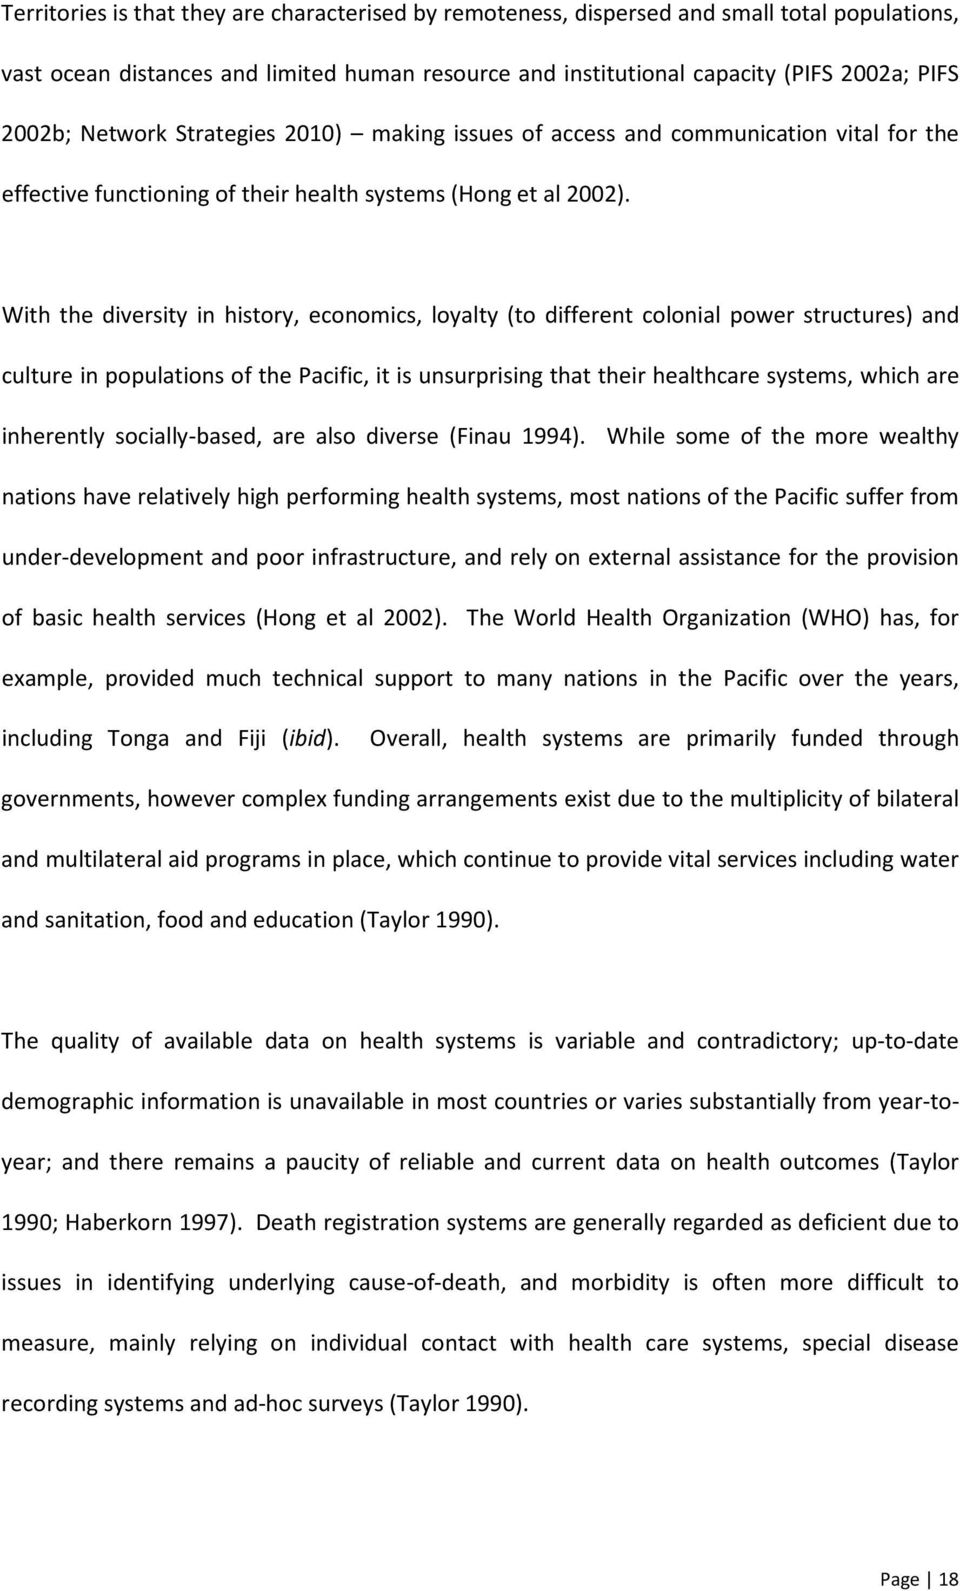 With the diversity in history, economics, loyalty (to different colonial power structures) and culture in populations of the Pacific, it is unsurprising that their healthcare systems, which are